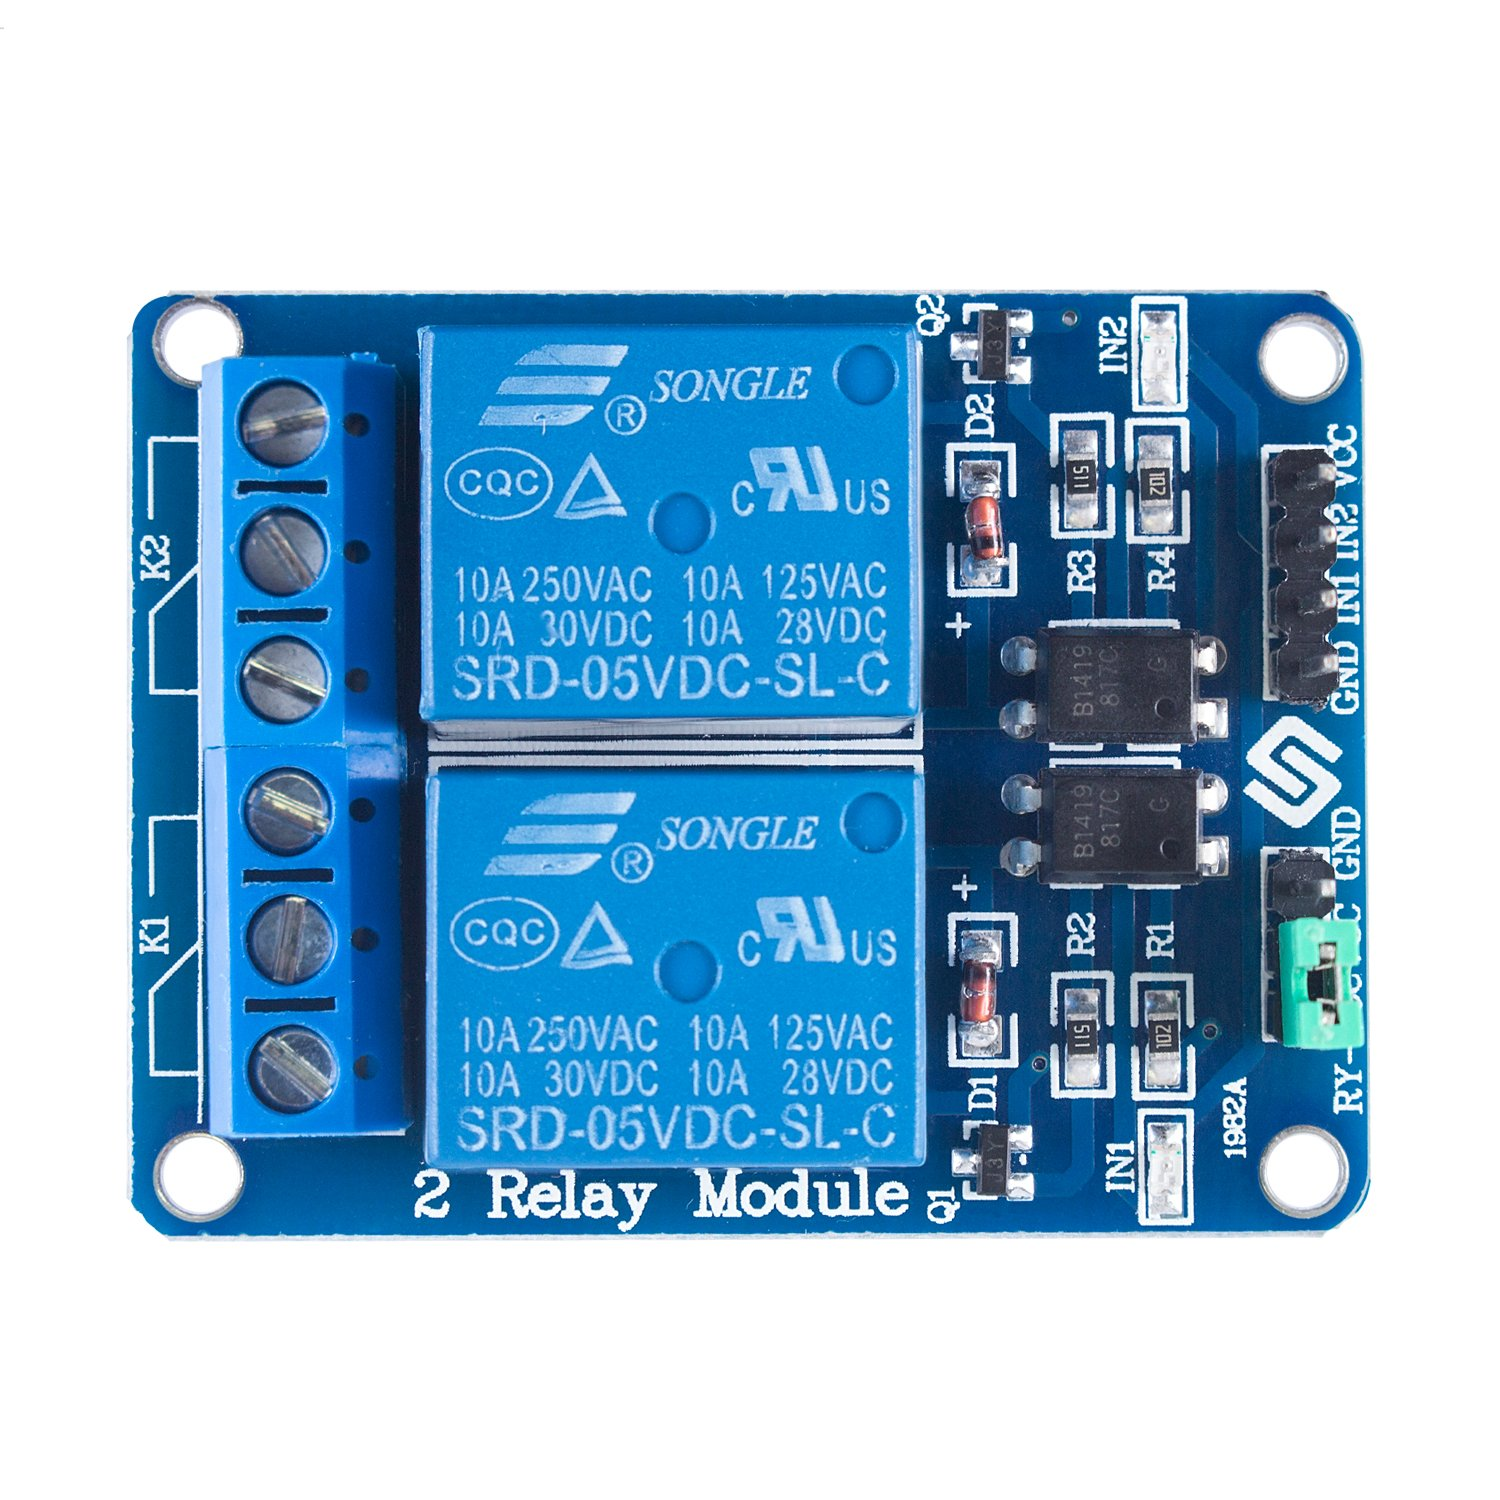 Sunfounder 2 Channel Dc 5v Relay Module With Optocoupler Power Low Level Trigger Expansion Board For Arduino Uno R3 Mega 2560 1280 Dsp Arm Pic Avr